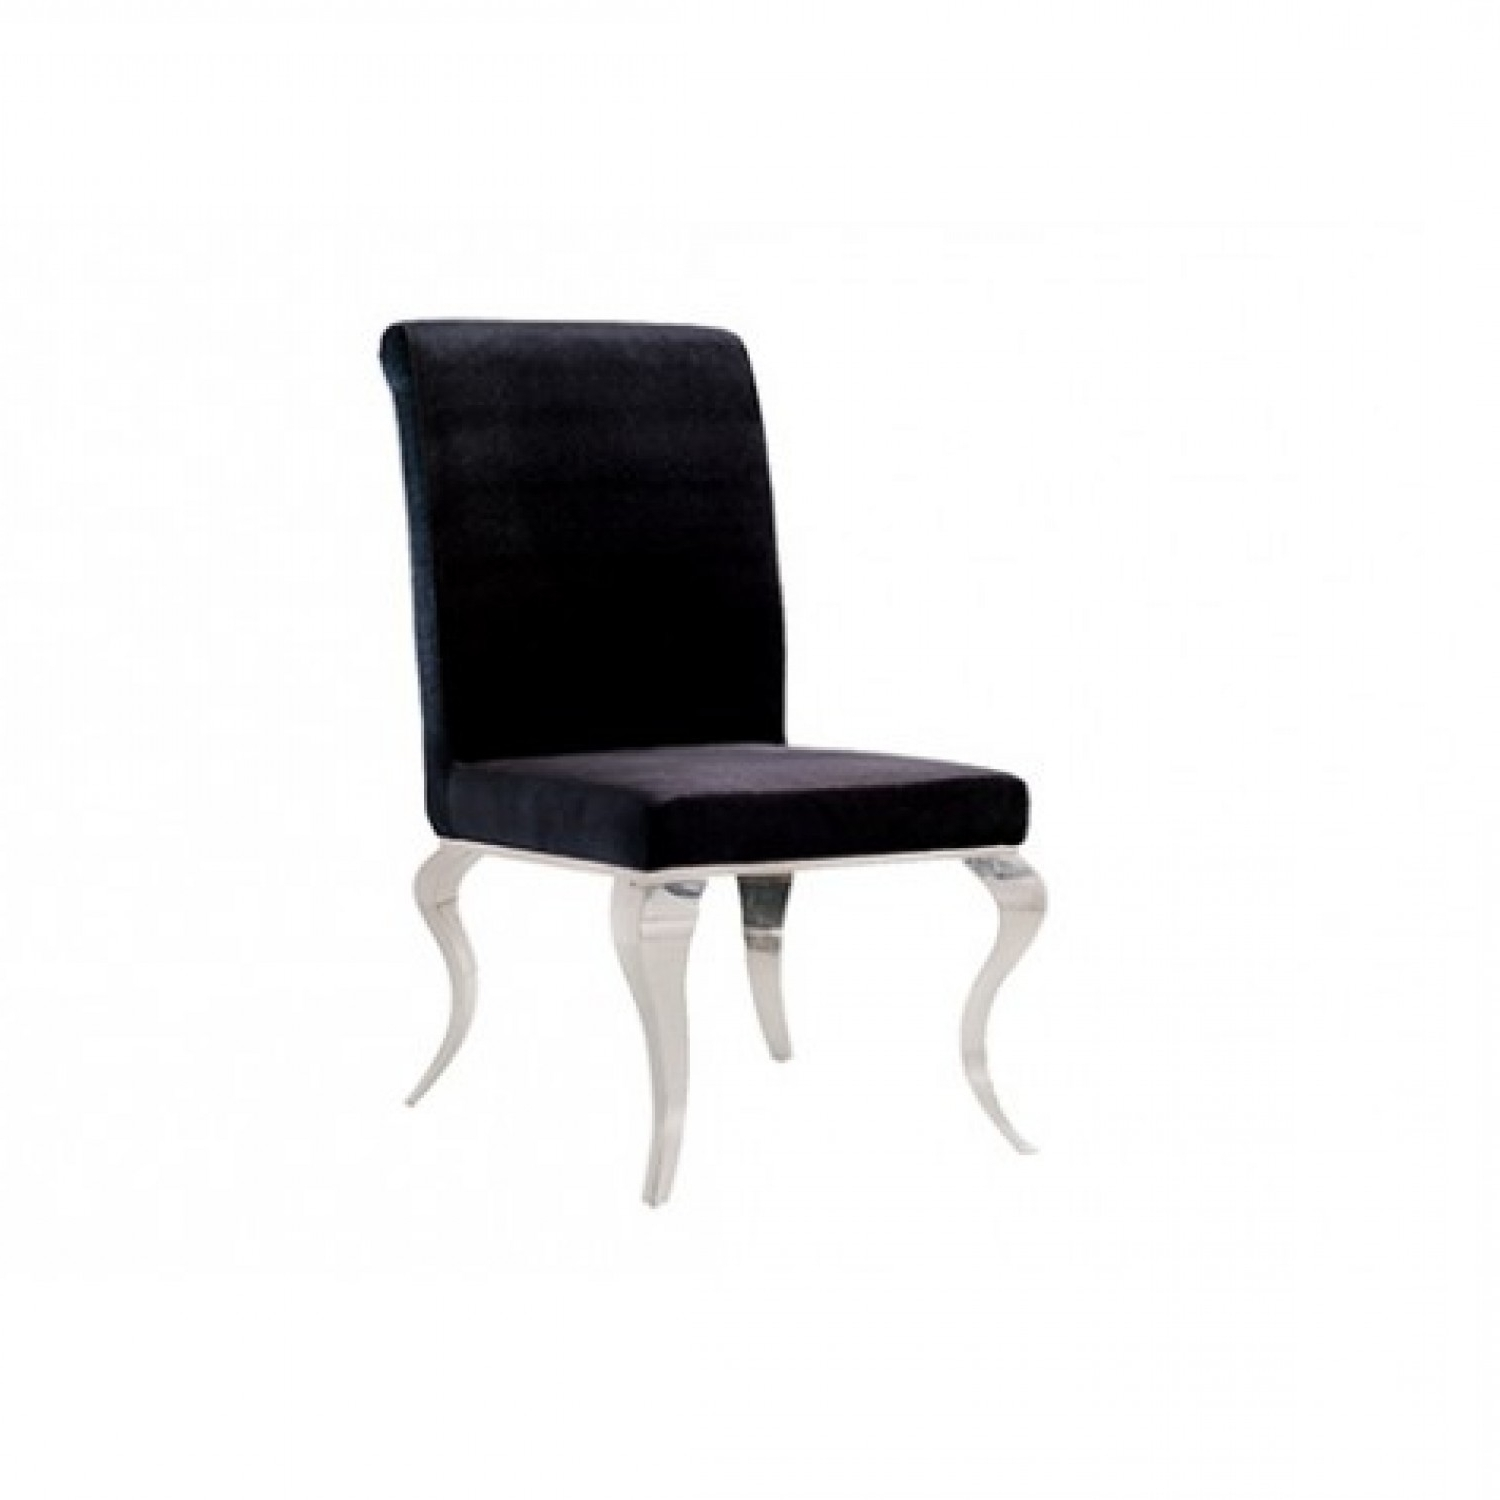 Stylish Dining Chairs Intended For Latest Louis Dining Chair In Black Velvet – Stylish Dining (View 16 of 25)